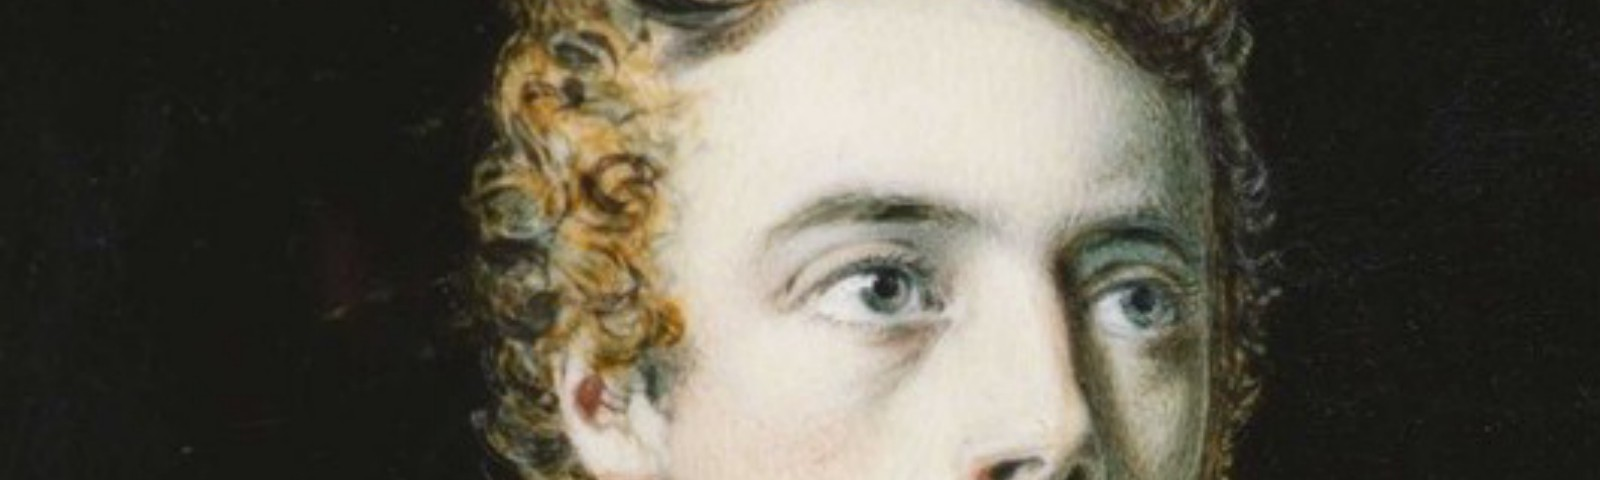 Its The 200th Anniversary Of John Keats Writing His Famous